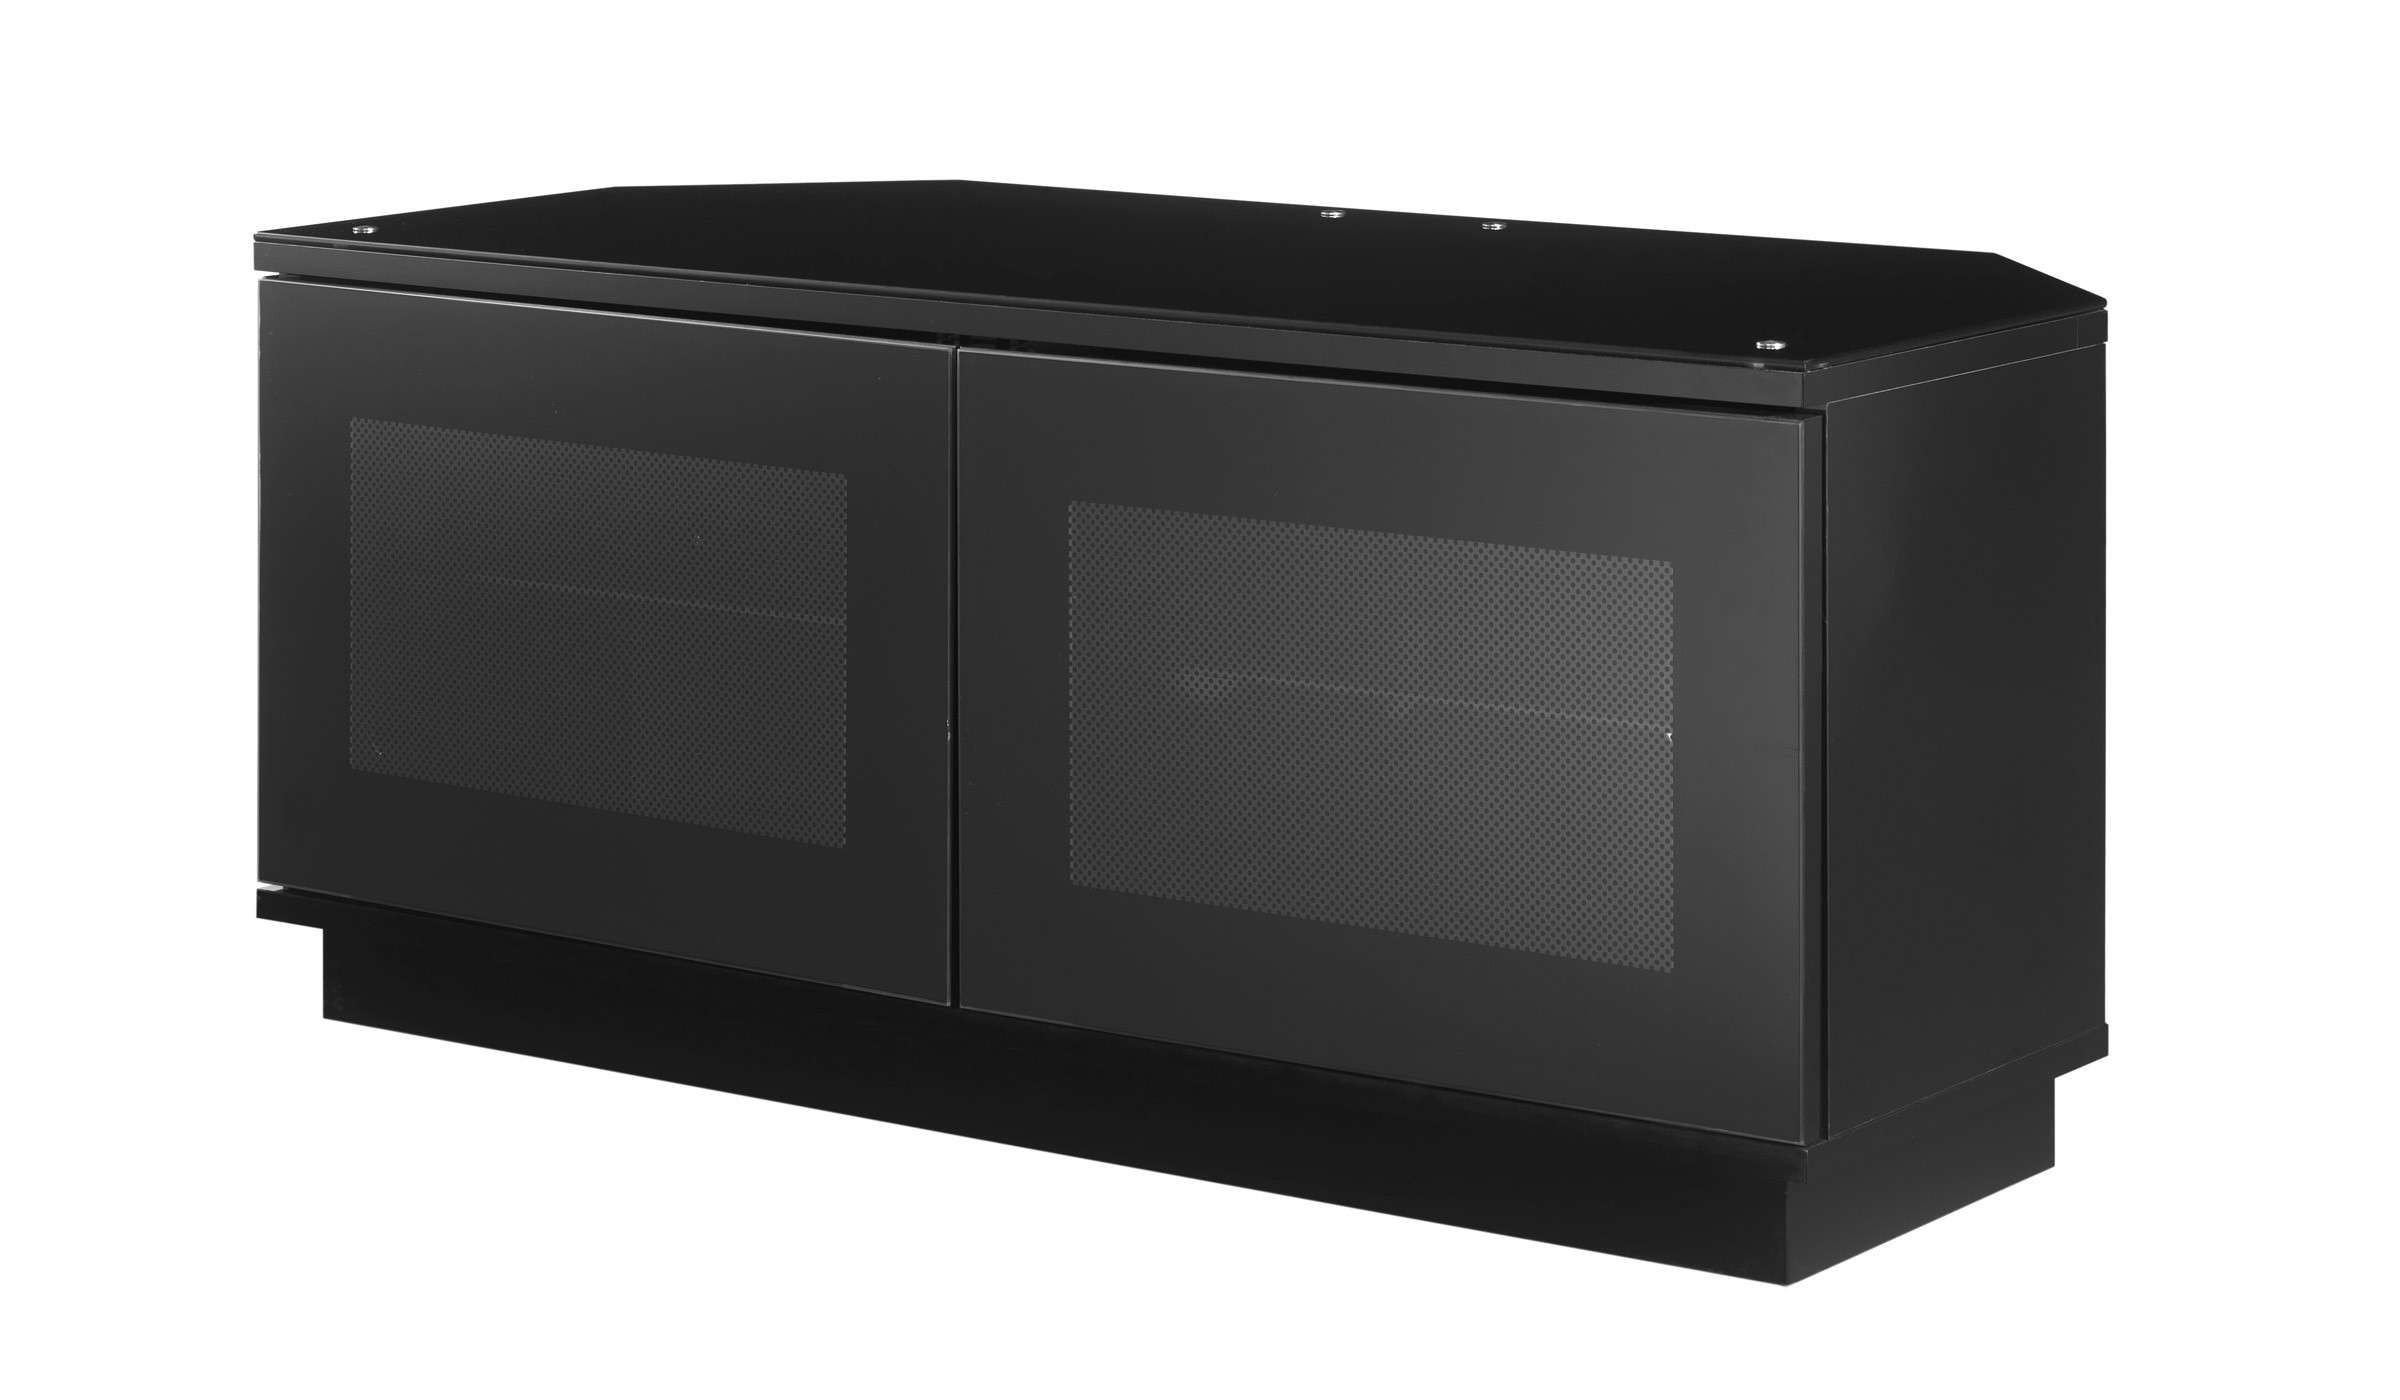 Small Black Tv Stand Cabinet With Door For Corner – Decofurnish Throughout Small Black Tv Cabinets (View 13 of 20)